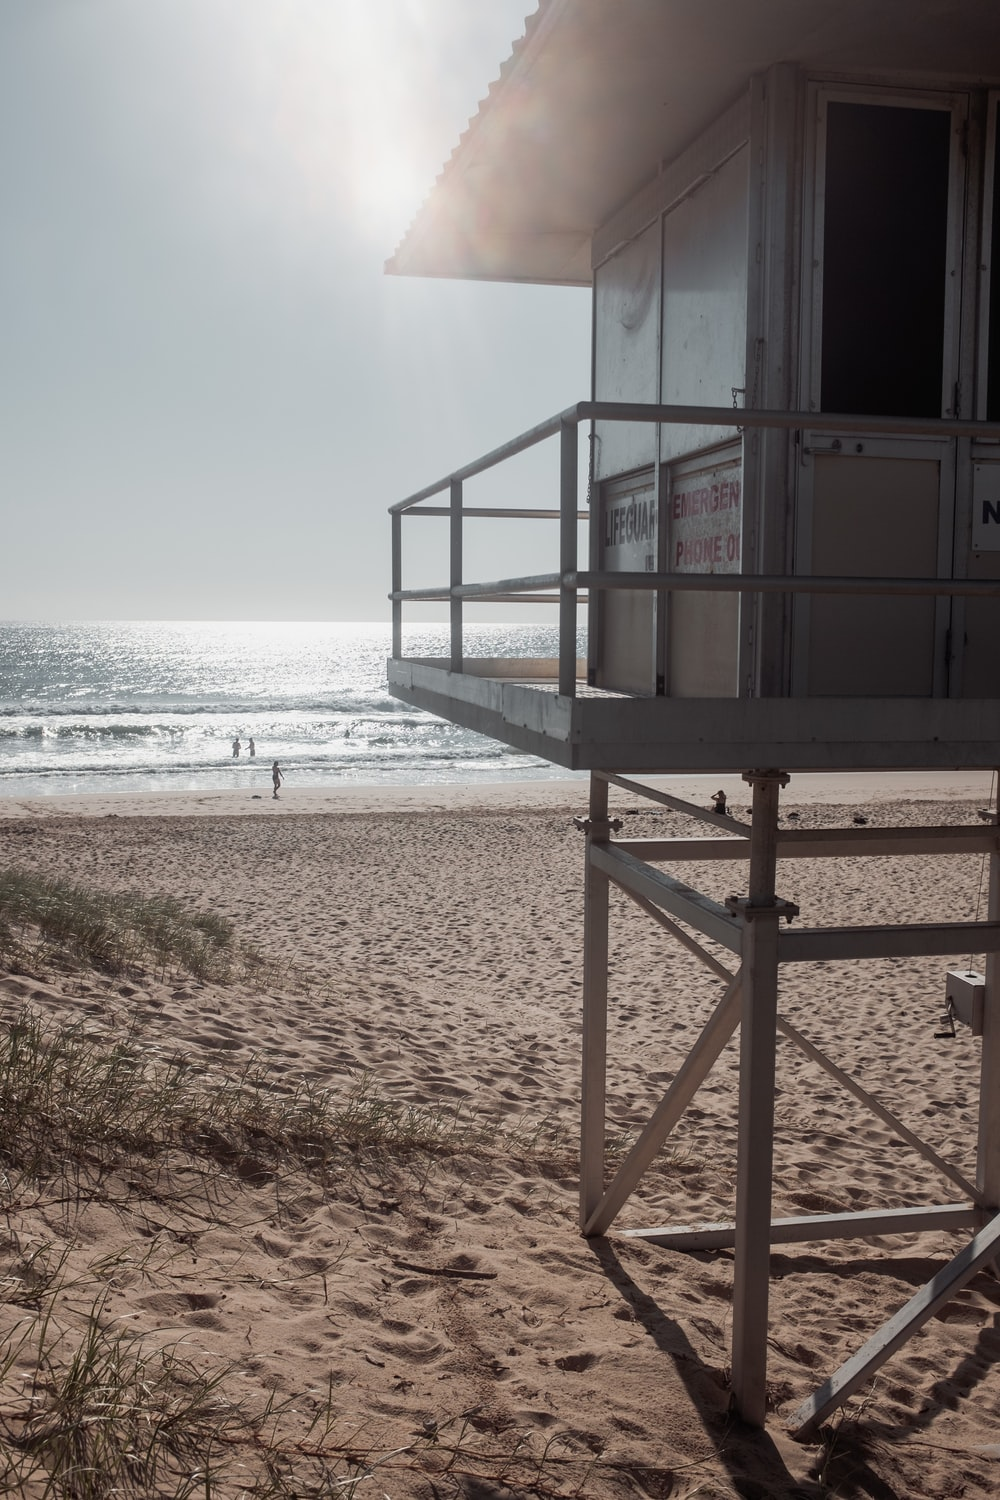 brown wooden lifeguard house on beach during daytime